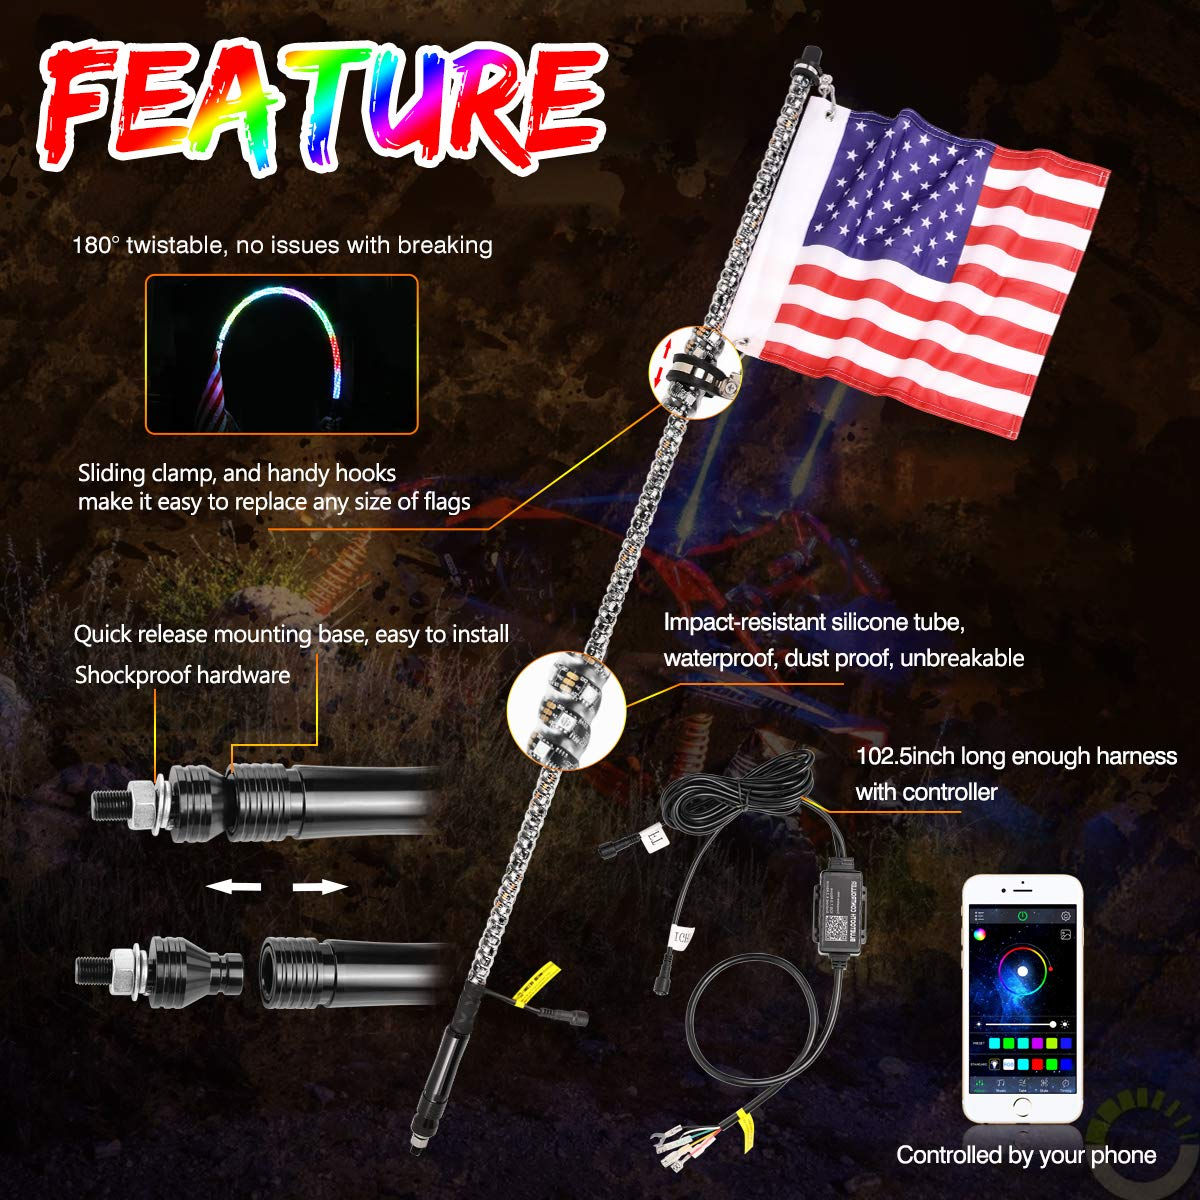 2Pcs 5ft LED Whip Lights with Turn//Brake Light SWATOW INDUSTRIES Lighted Antenna Whip Spiral RGB LED Whip with Flag Dancing//Chasing Light Whip for UTV ATV RZR Truck Jeep 4 Wheeler Dune Buggy Boat